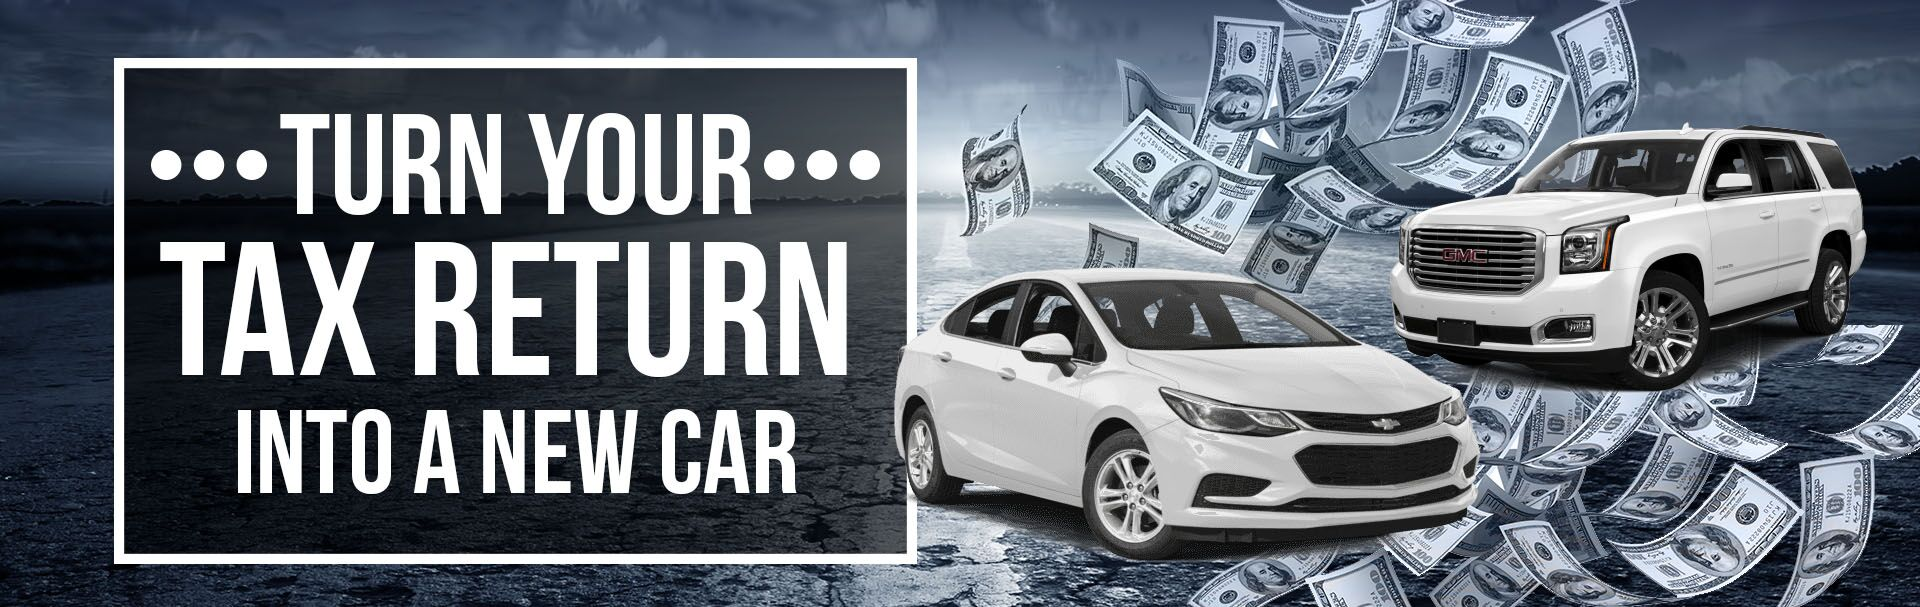 Turn Your Tax Return Into a New Car